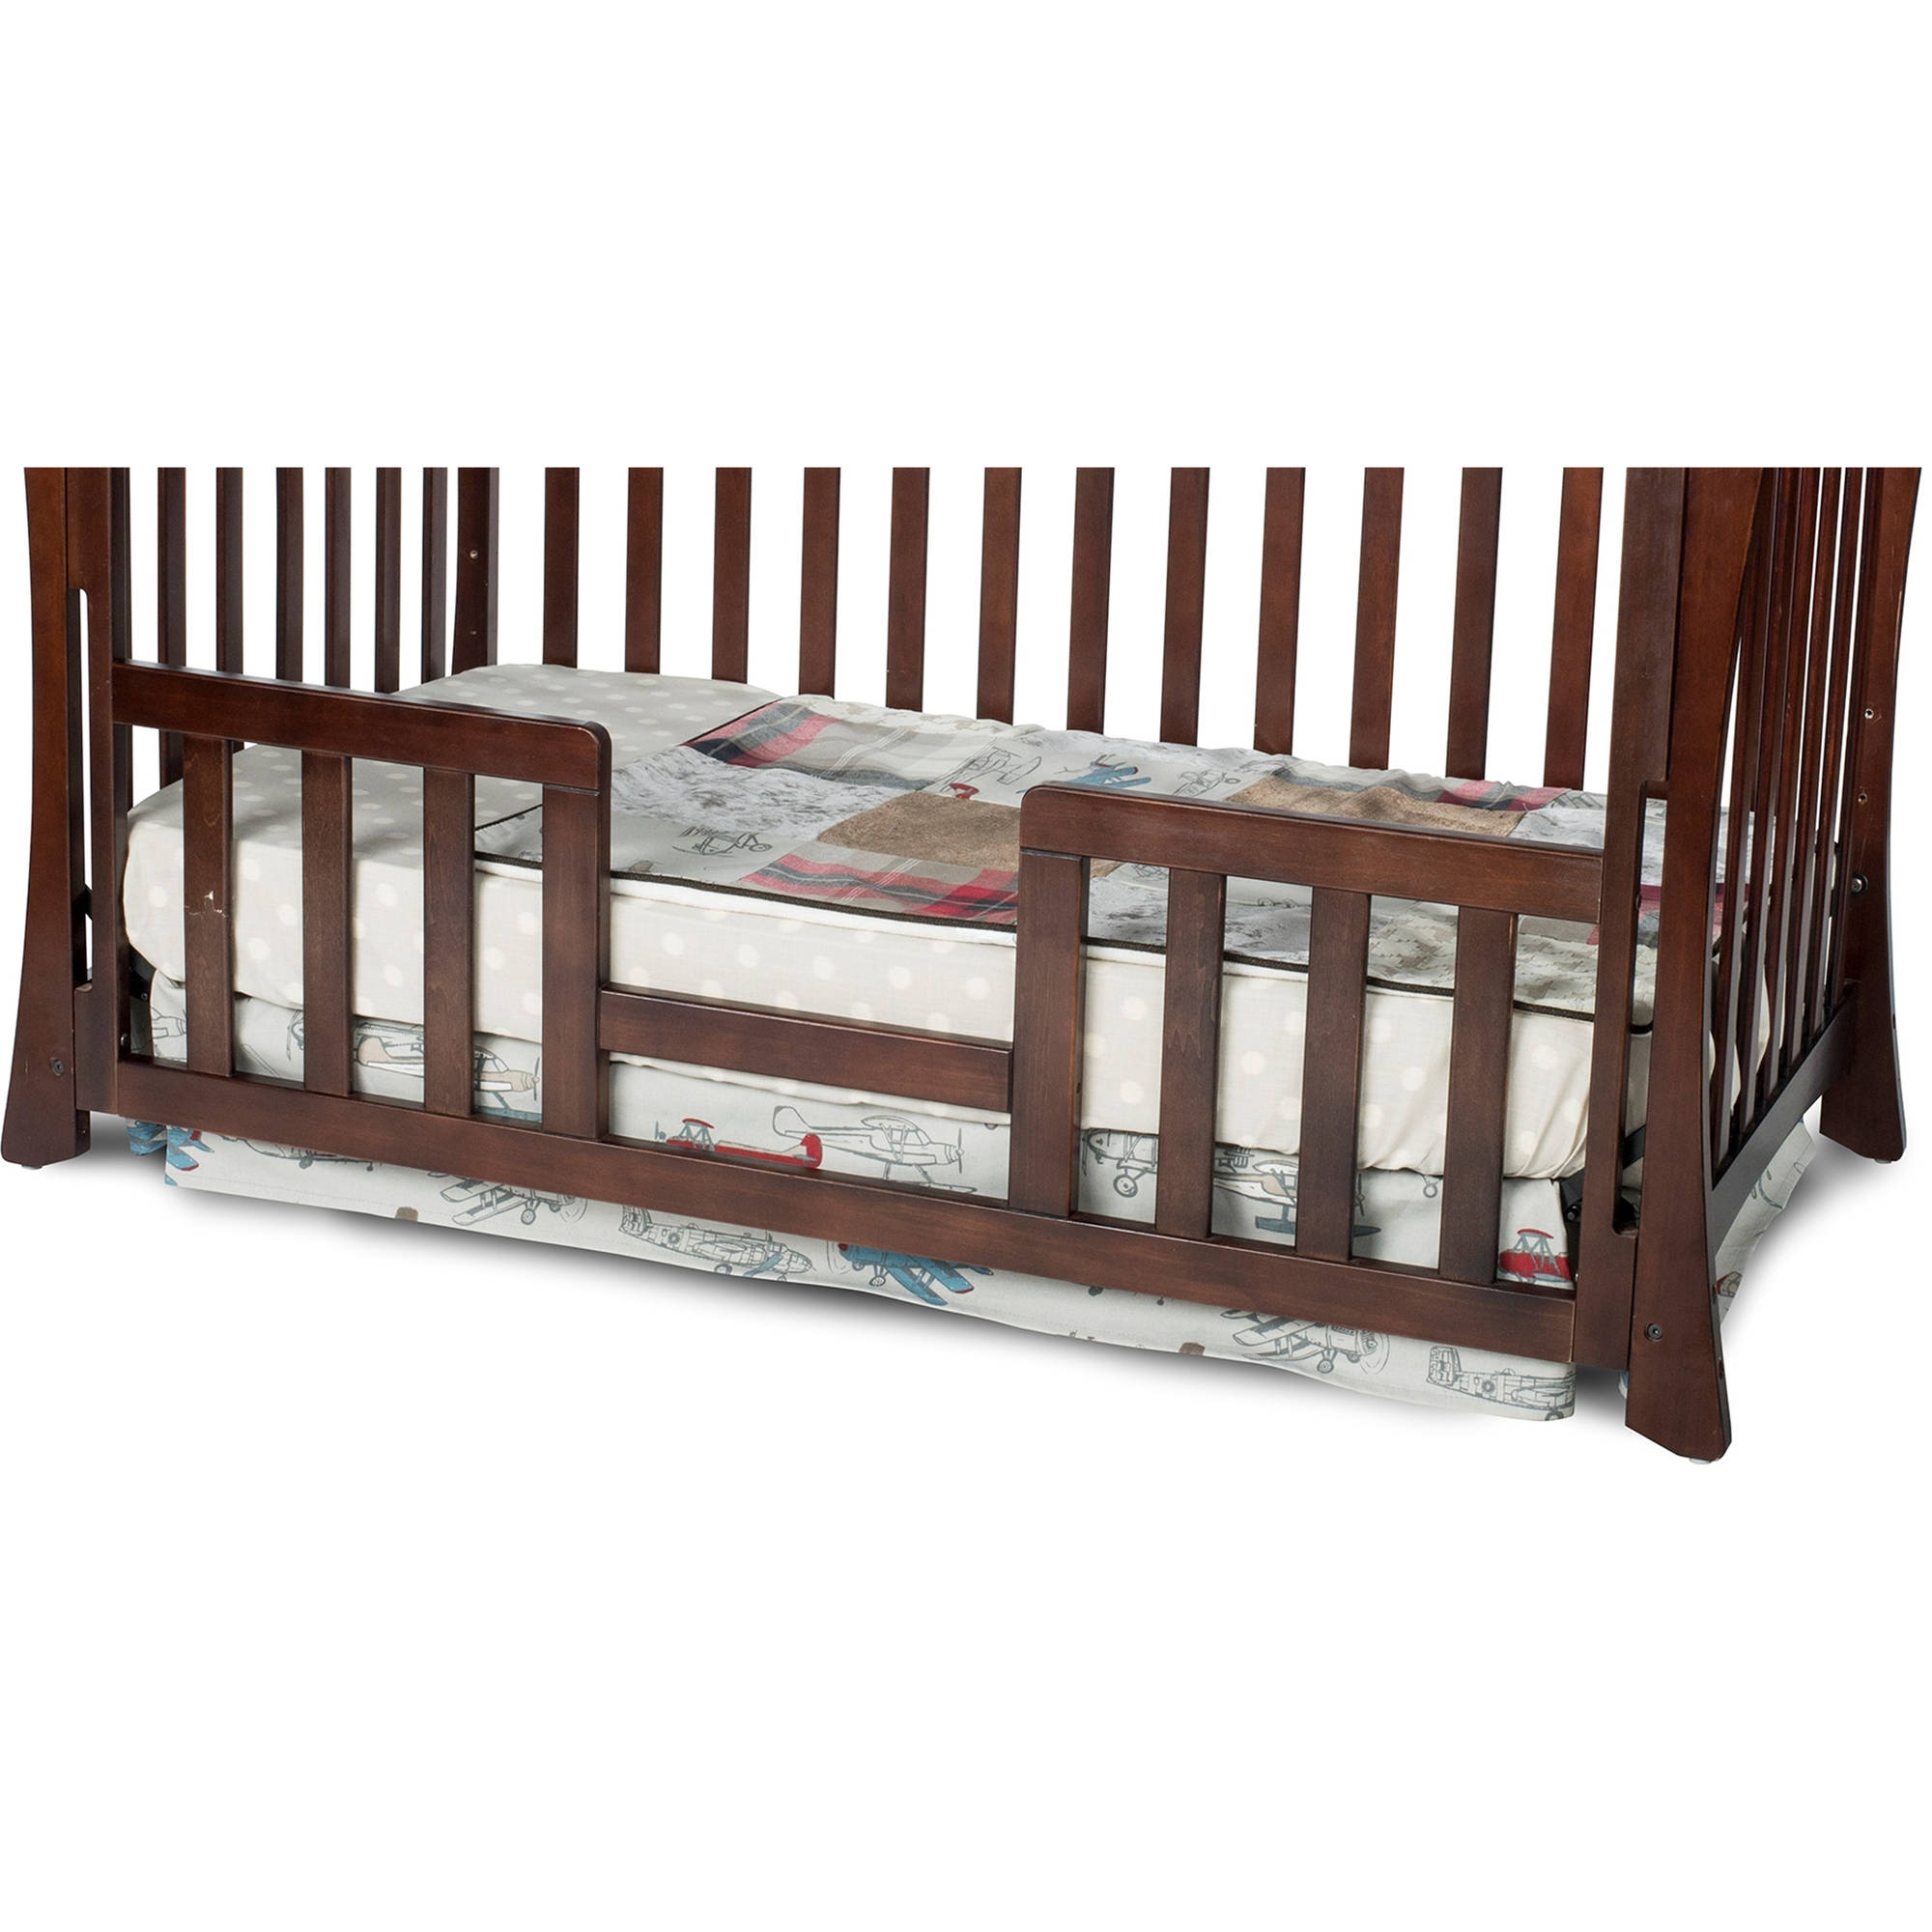 Child Craft Toddler Guard Rail for Parisian Crib, Select Cherry